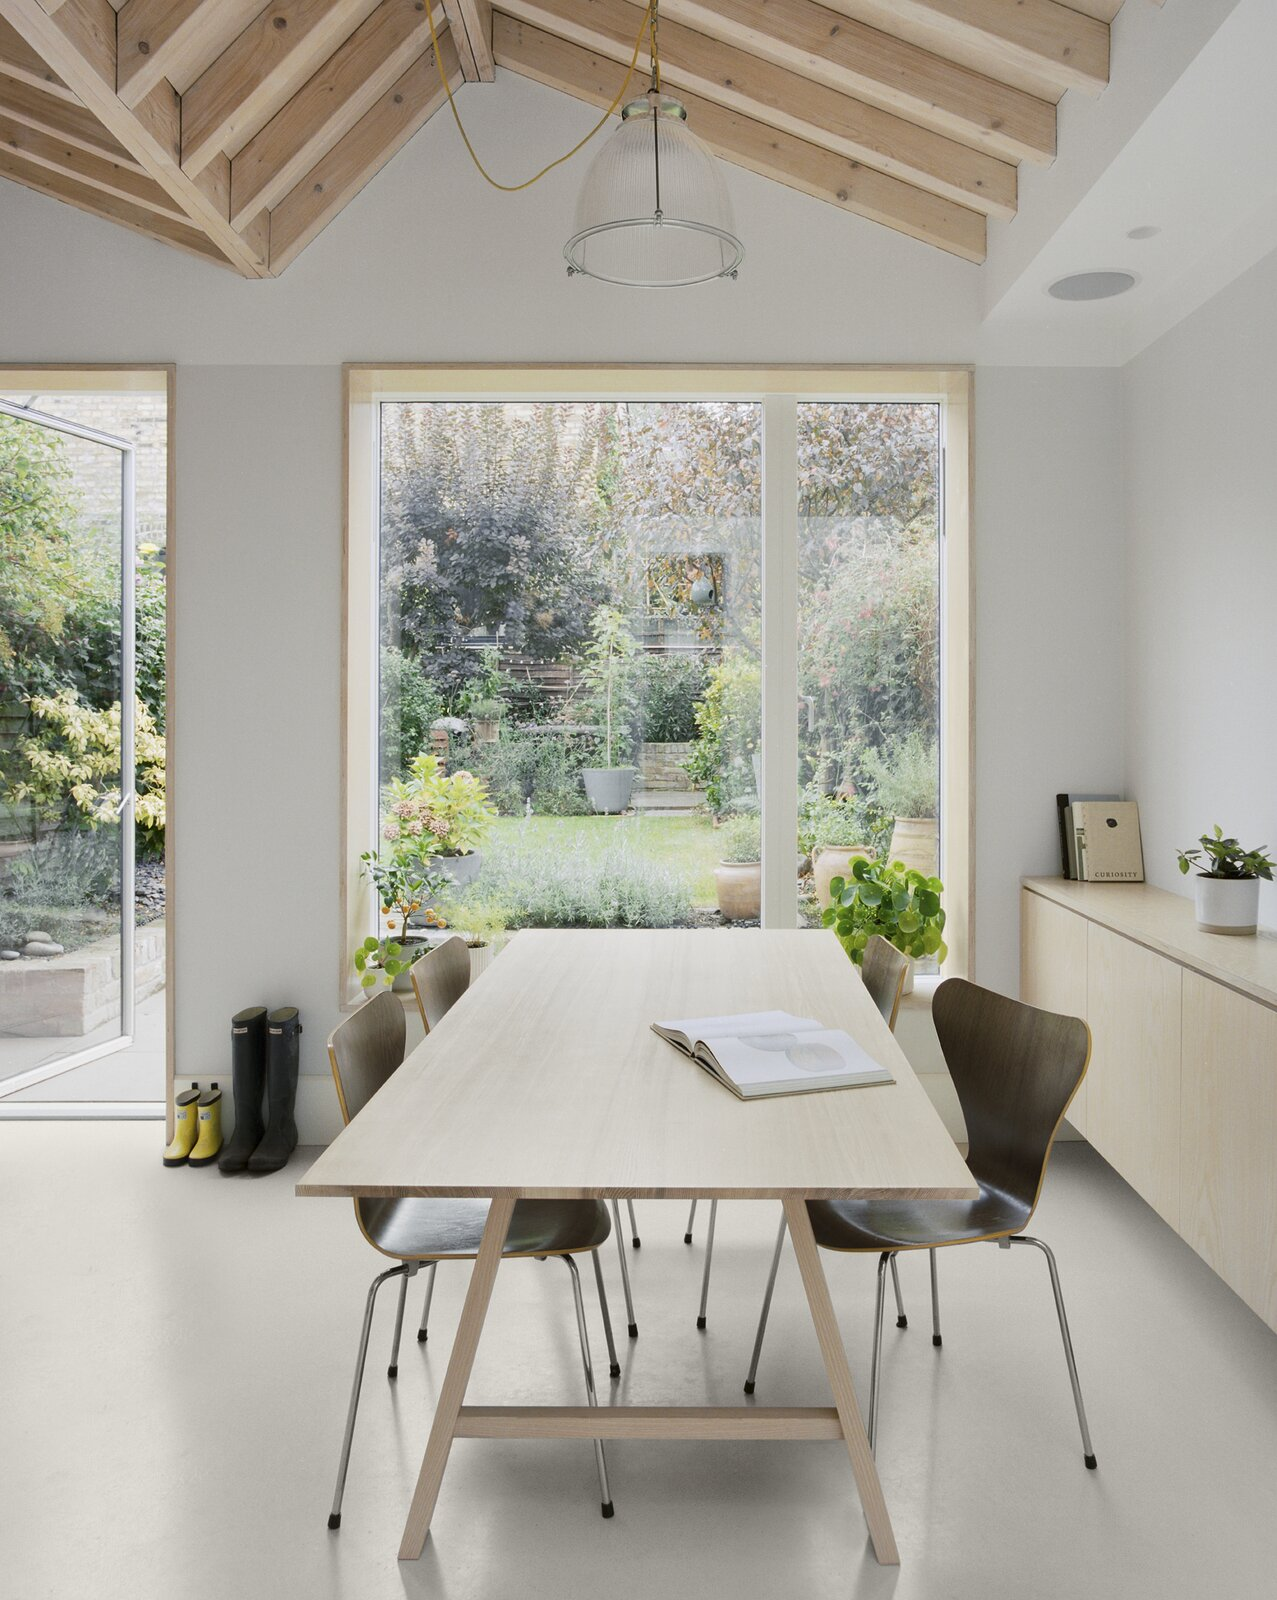 Dining area of Zigzag Roof House by 4 S Architecture.